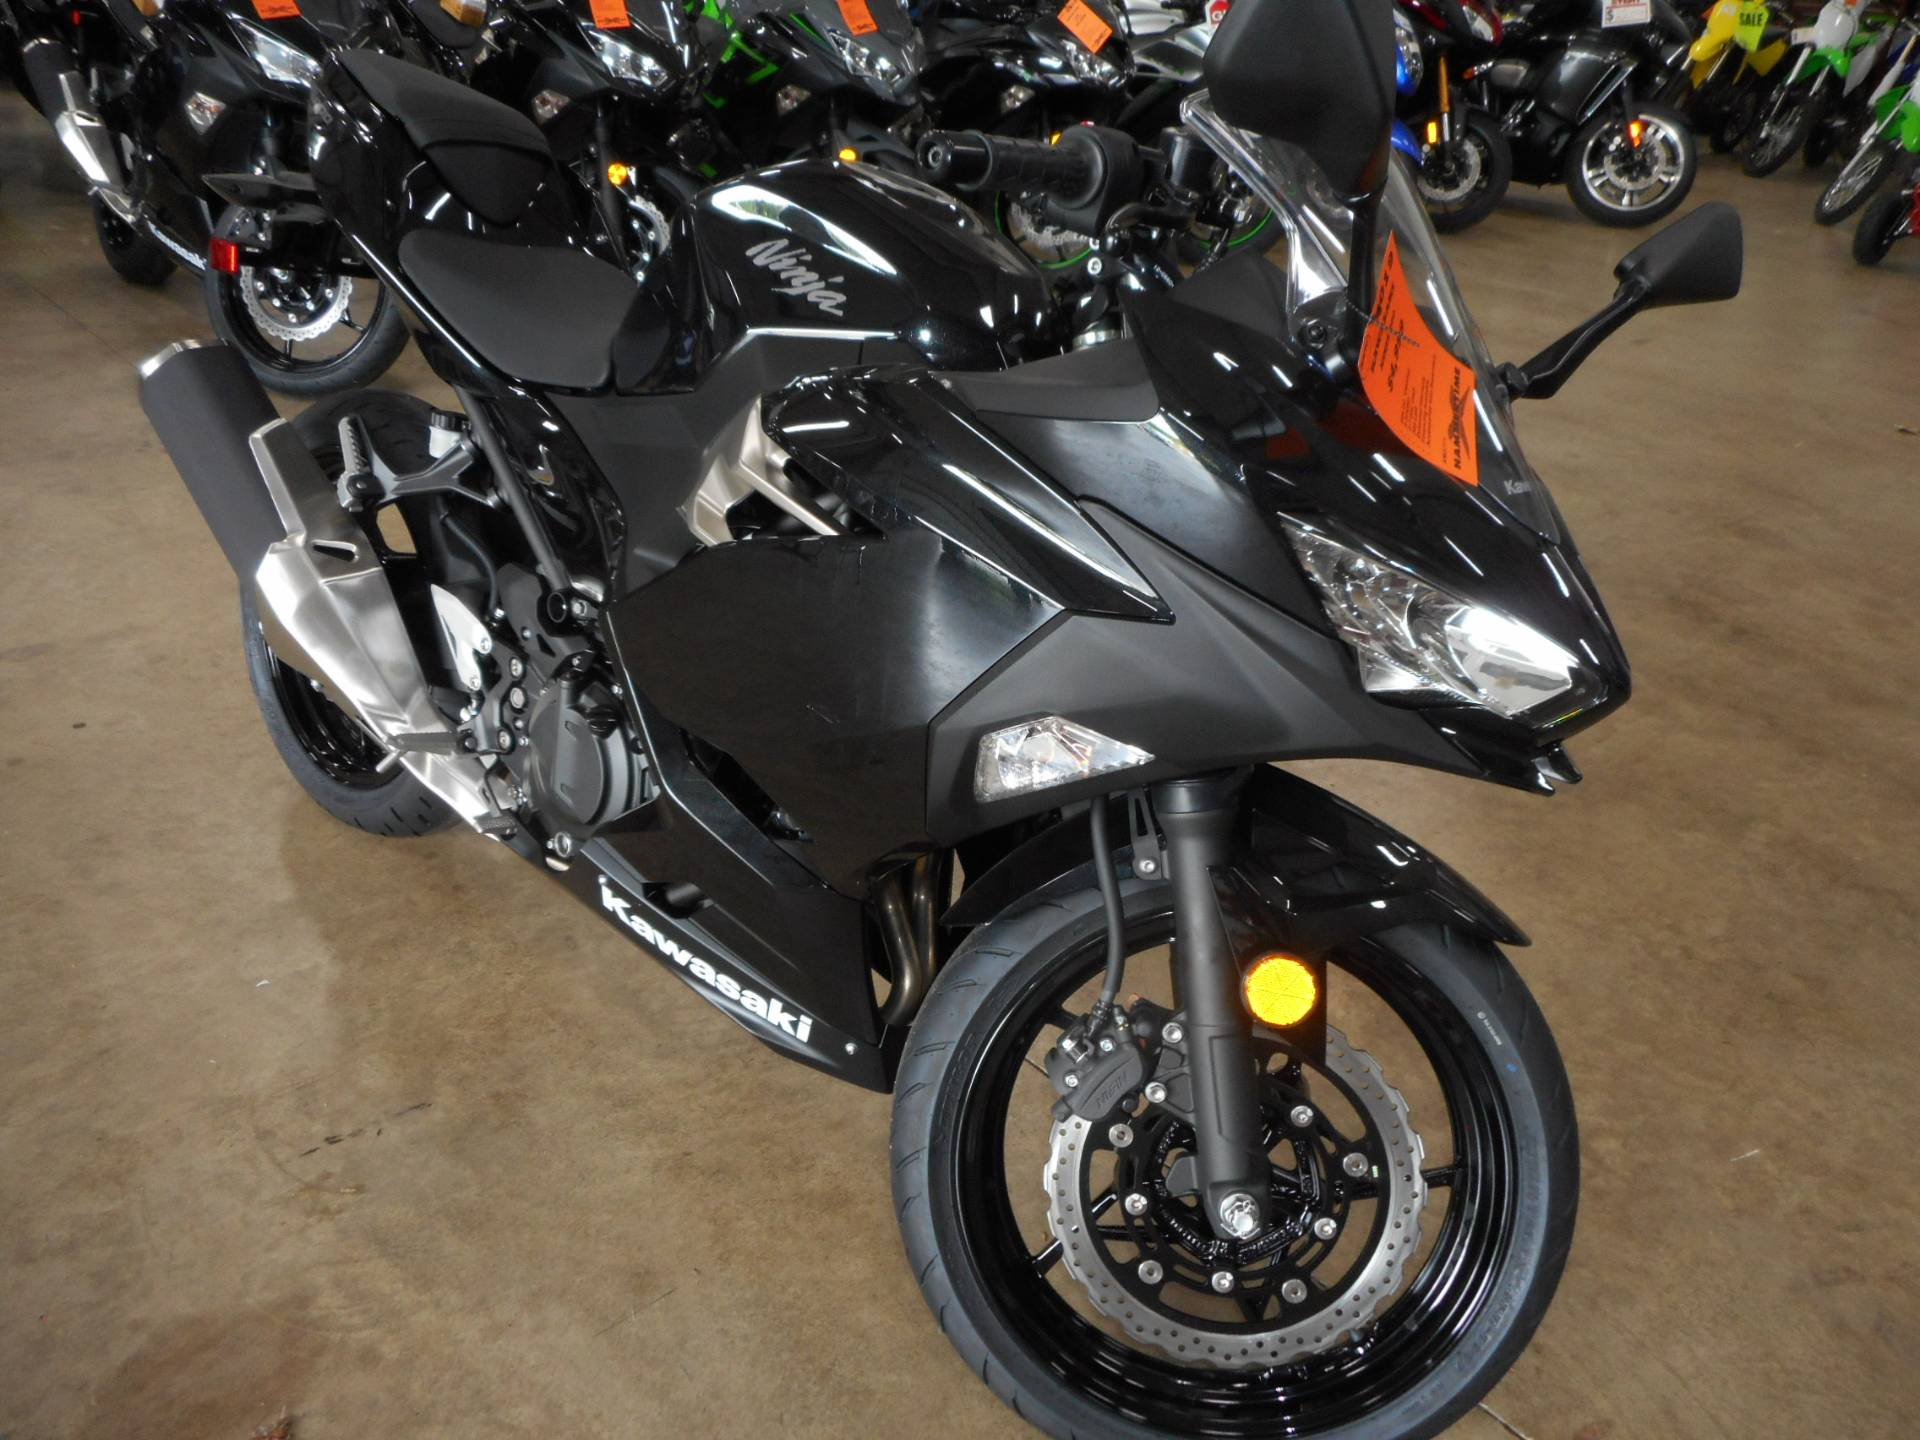 2019 Kawasaki Ninja 400 in Belvidere, Illinois - Photo 2